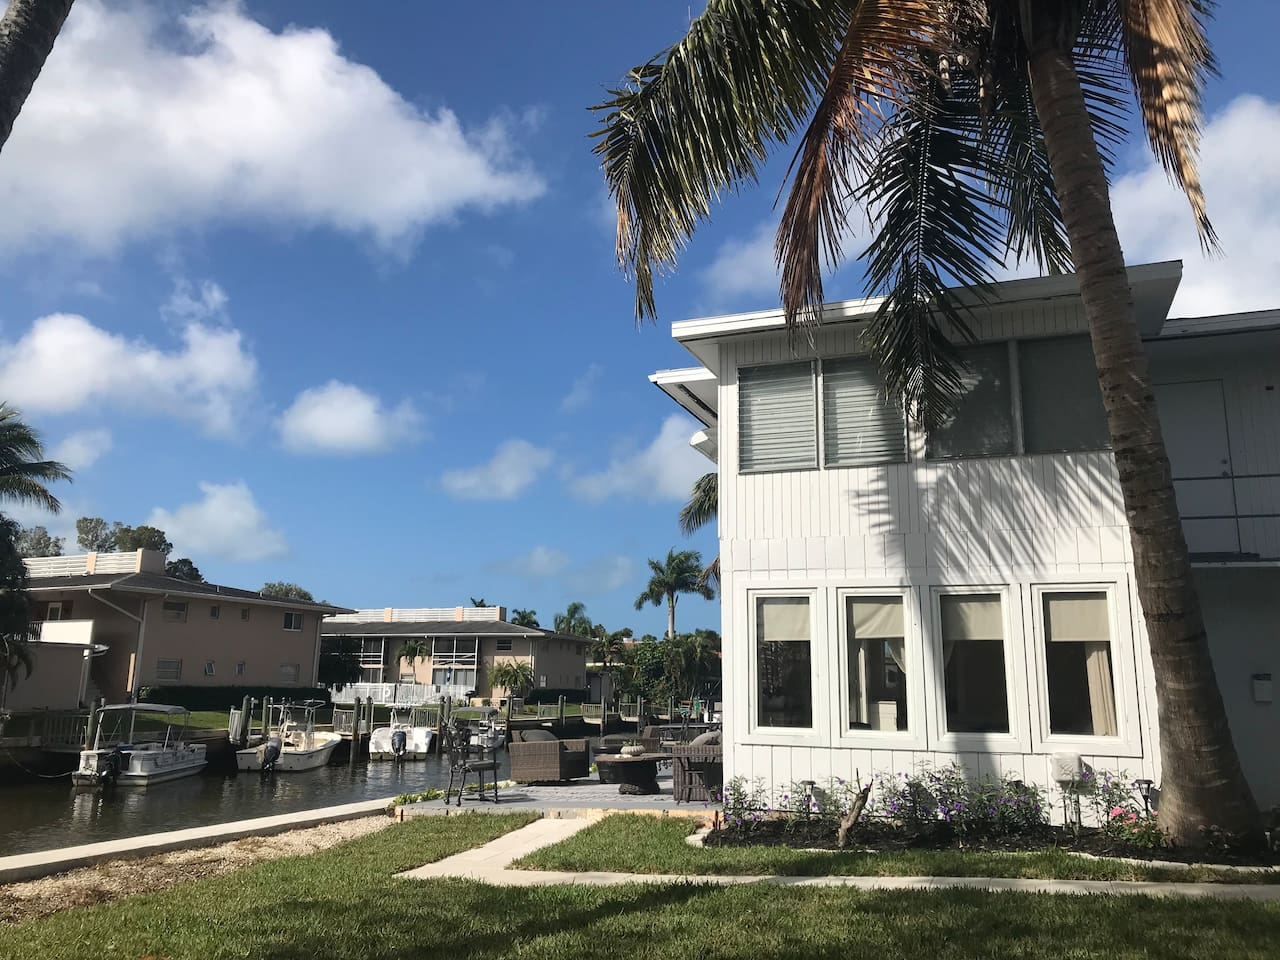 Beautiful Renovated Waterfront Old Florida Style apartment on canal, less than 2 miles from the beach. Dock your boat right next to your spacious open air patio and relax while enjoying the sunset and  fishing from your vacation home!